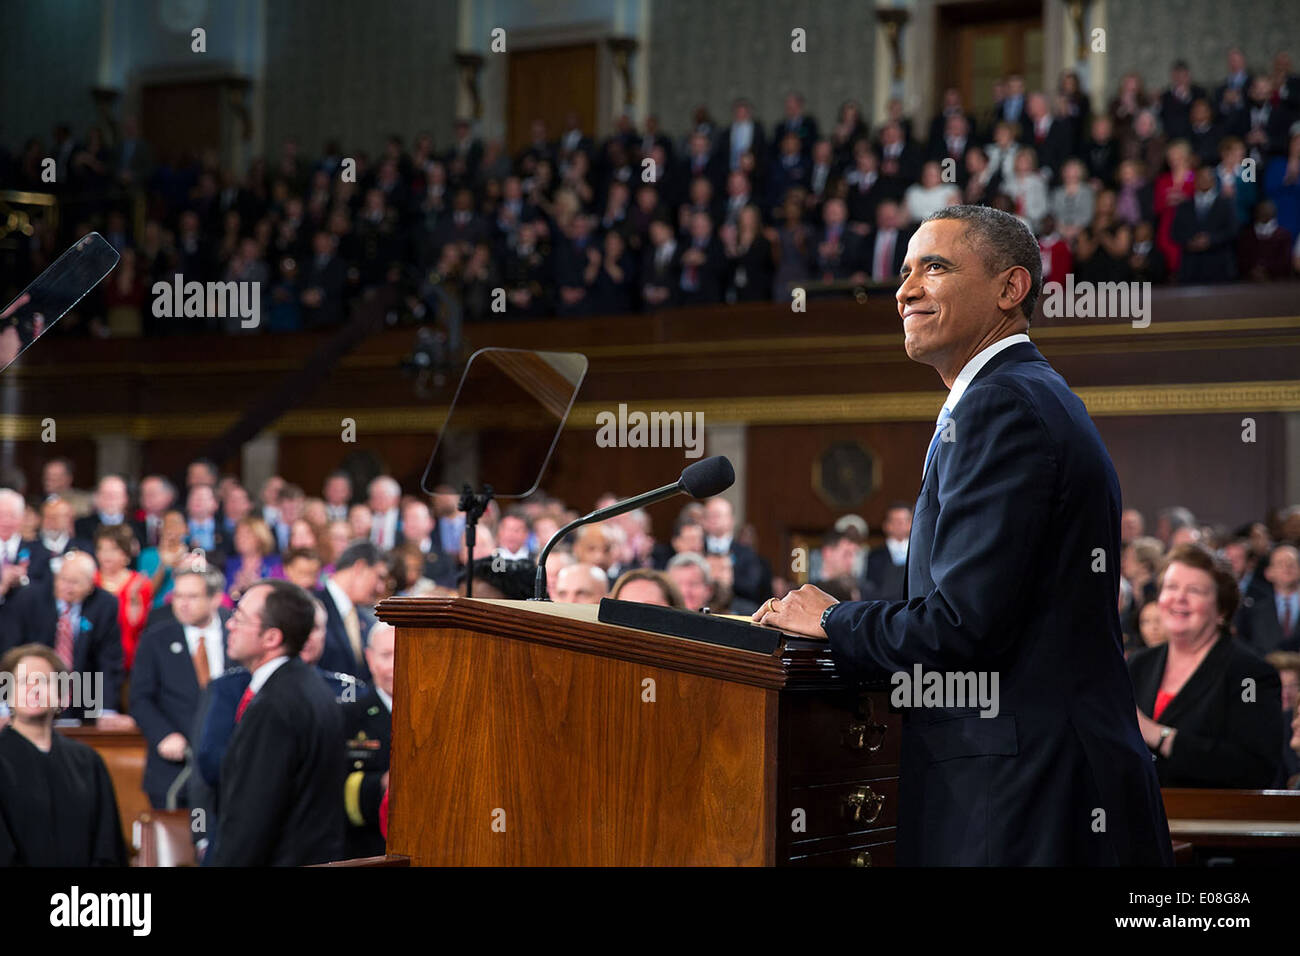 US President Barack Obama acknowledges applause before he delivers the State of the Union address in the House Chamber at the U.S. Capitol January 28, 2014 in Washington, DC. - Stock Image